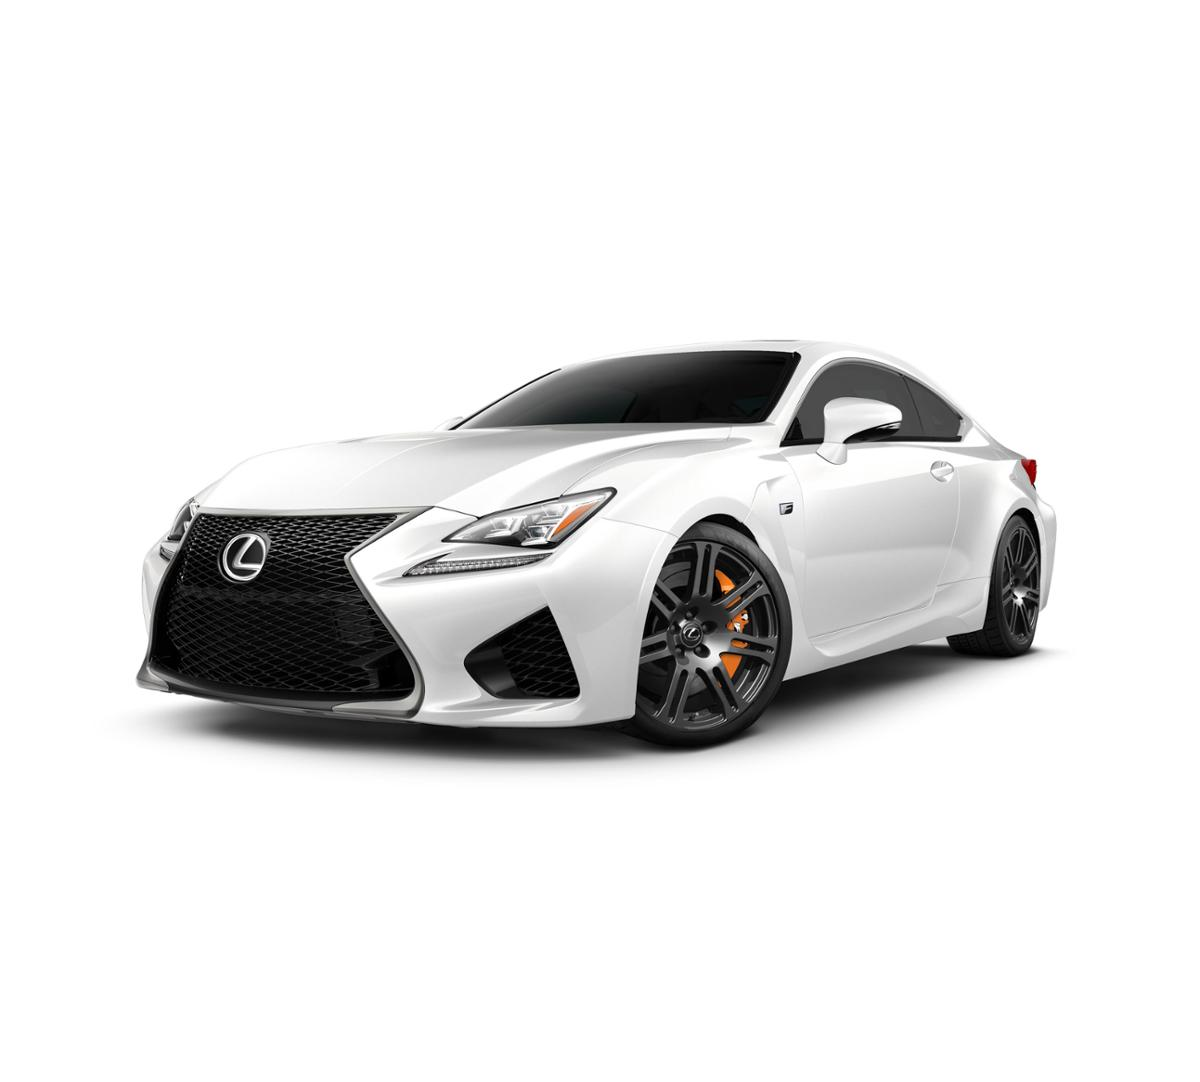 2017 Lexus Rc Exterior: Escondido Ultra White 2017 Lexus RC F: New Car For Sale